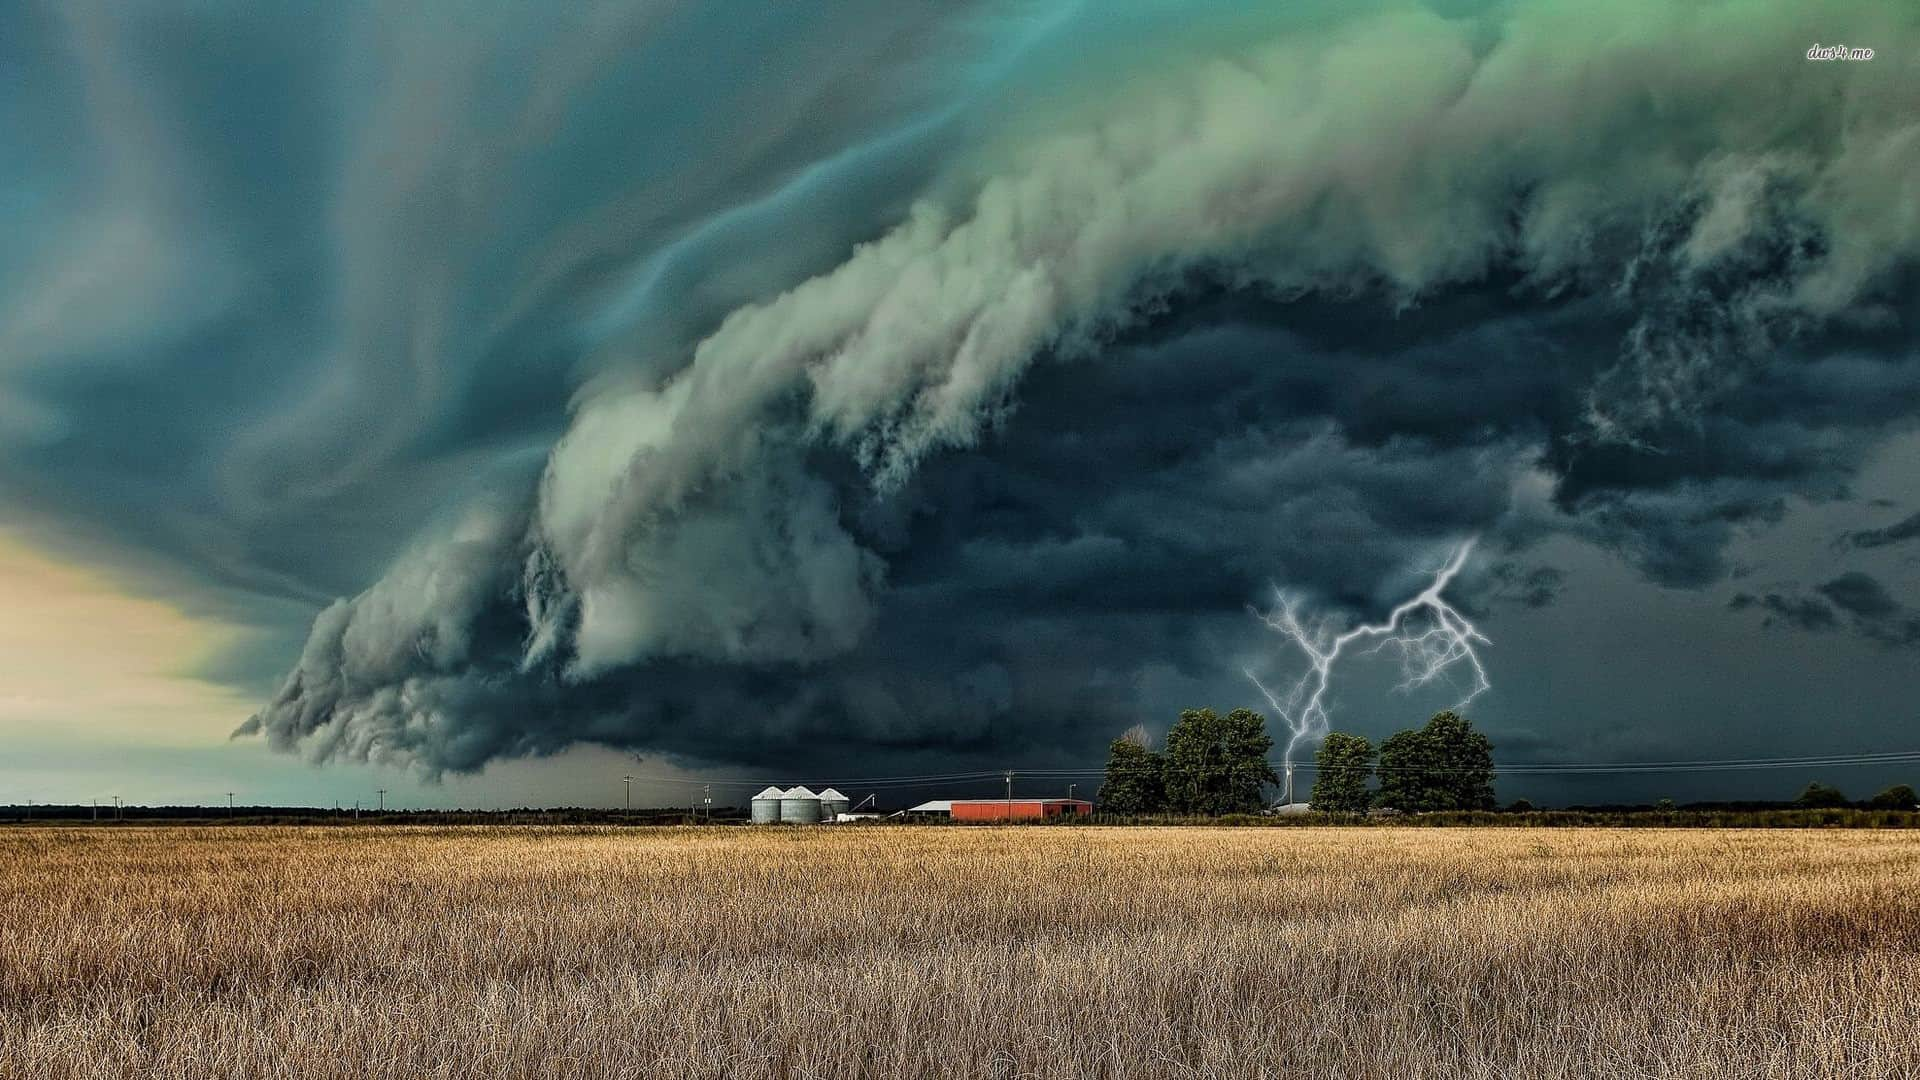 Living in Tornado Alley? Be proactive on safety.